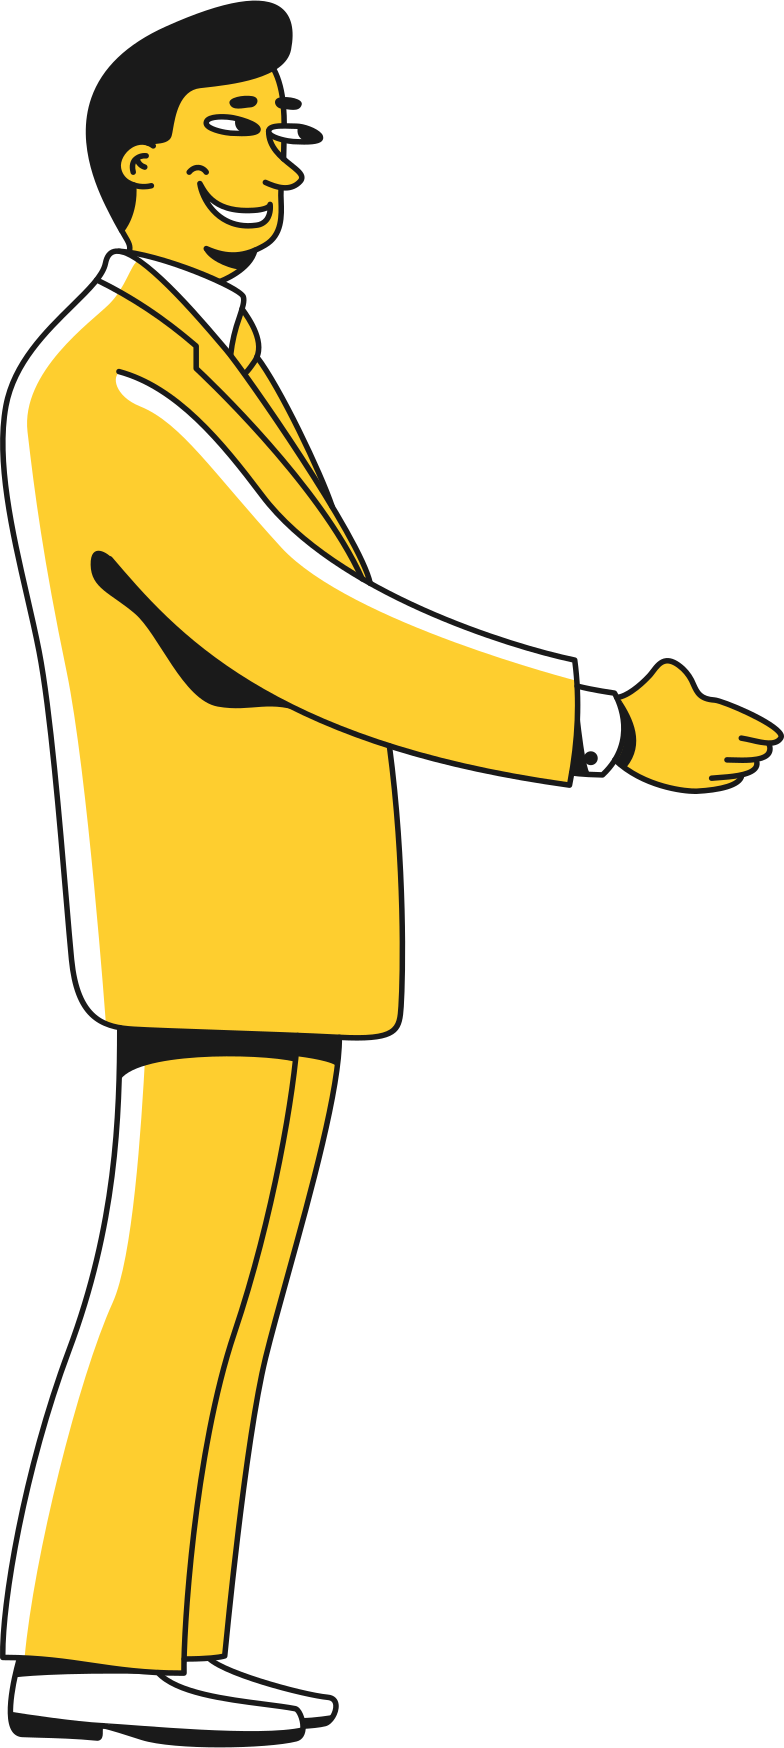 taxi  politician shaking hand Clipart illustration in PNG, SVG